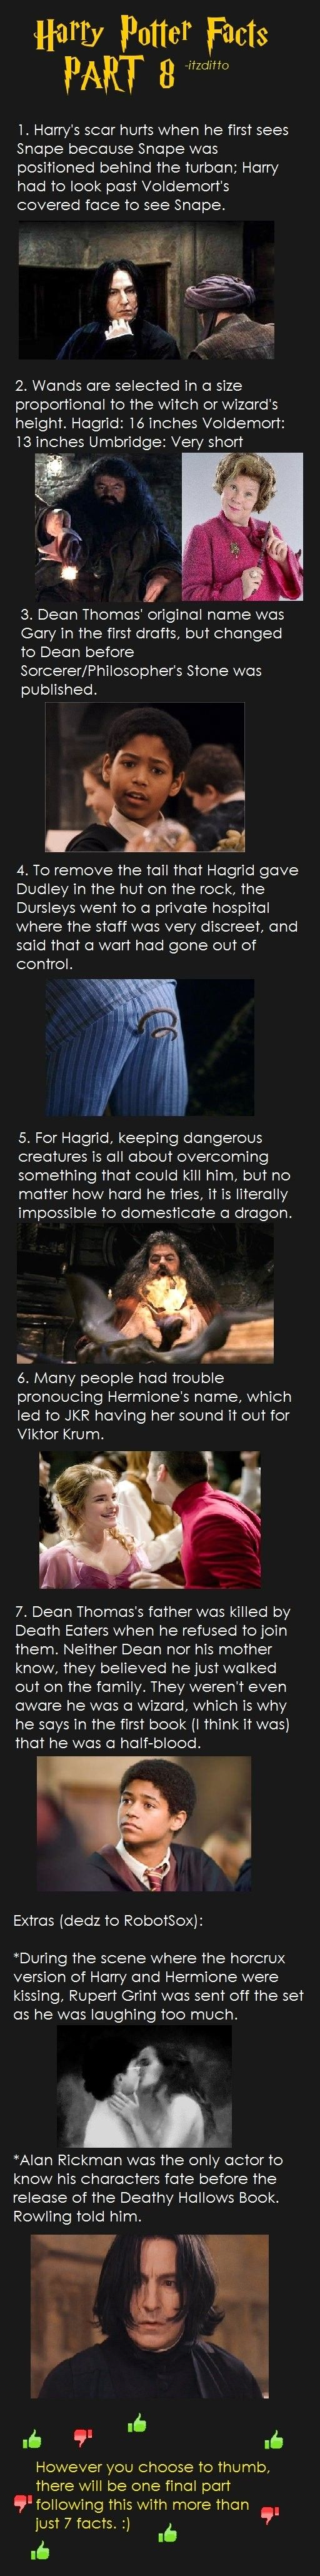 Harry Potter - Fact 8 - omg, the one about Dean's father!